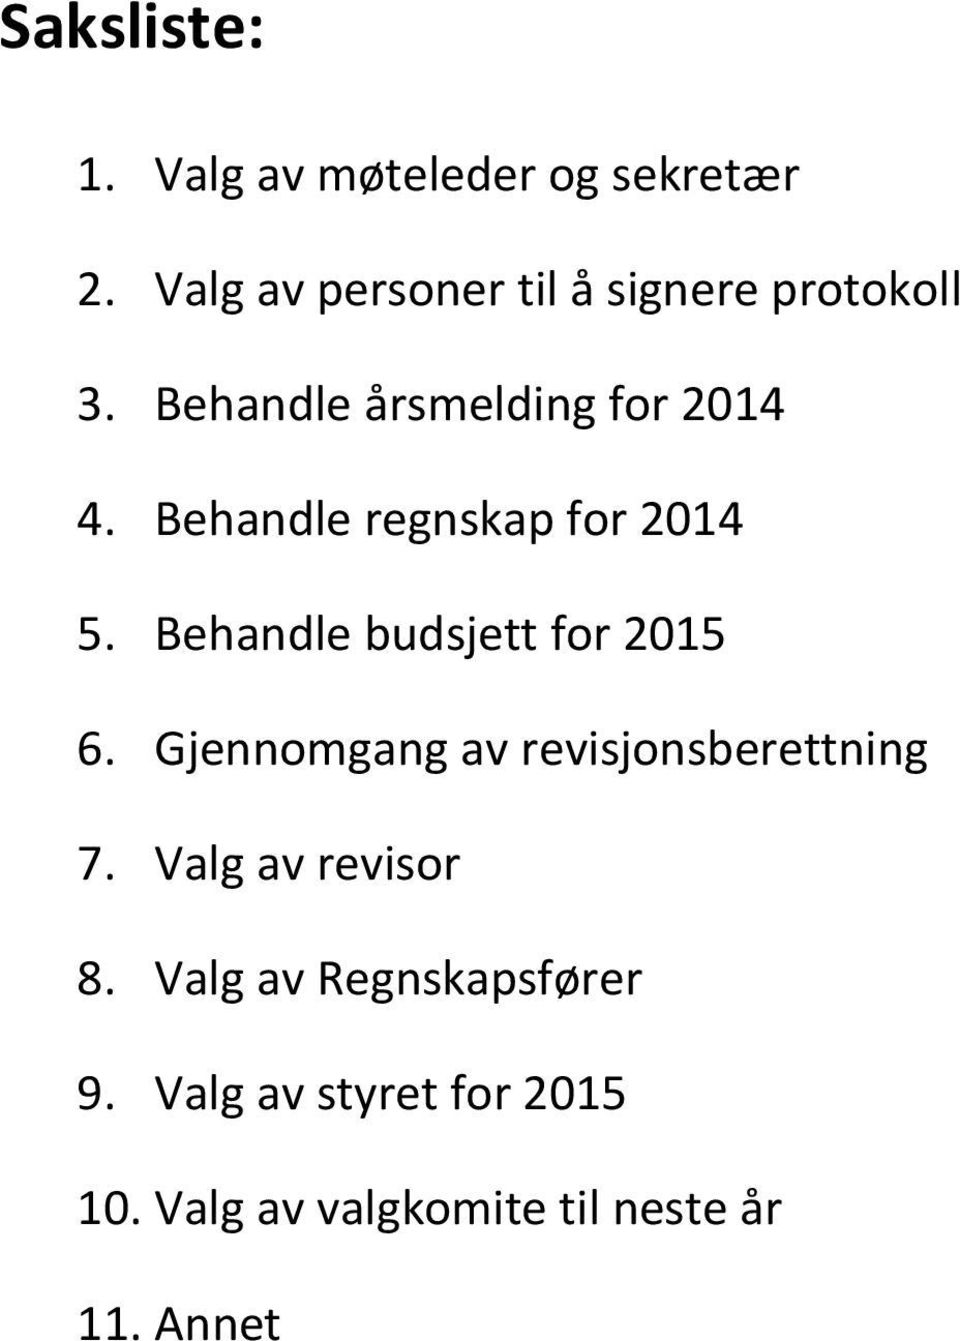 Behandle regnskap for 2014 5. Behandle budsjett for 2015 6.